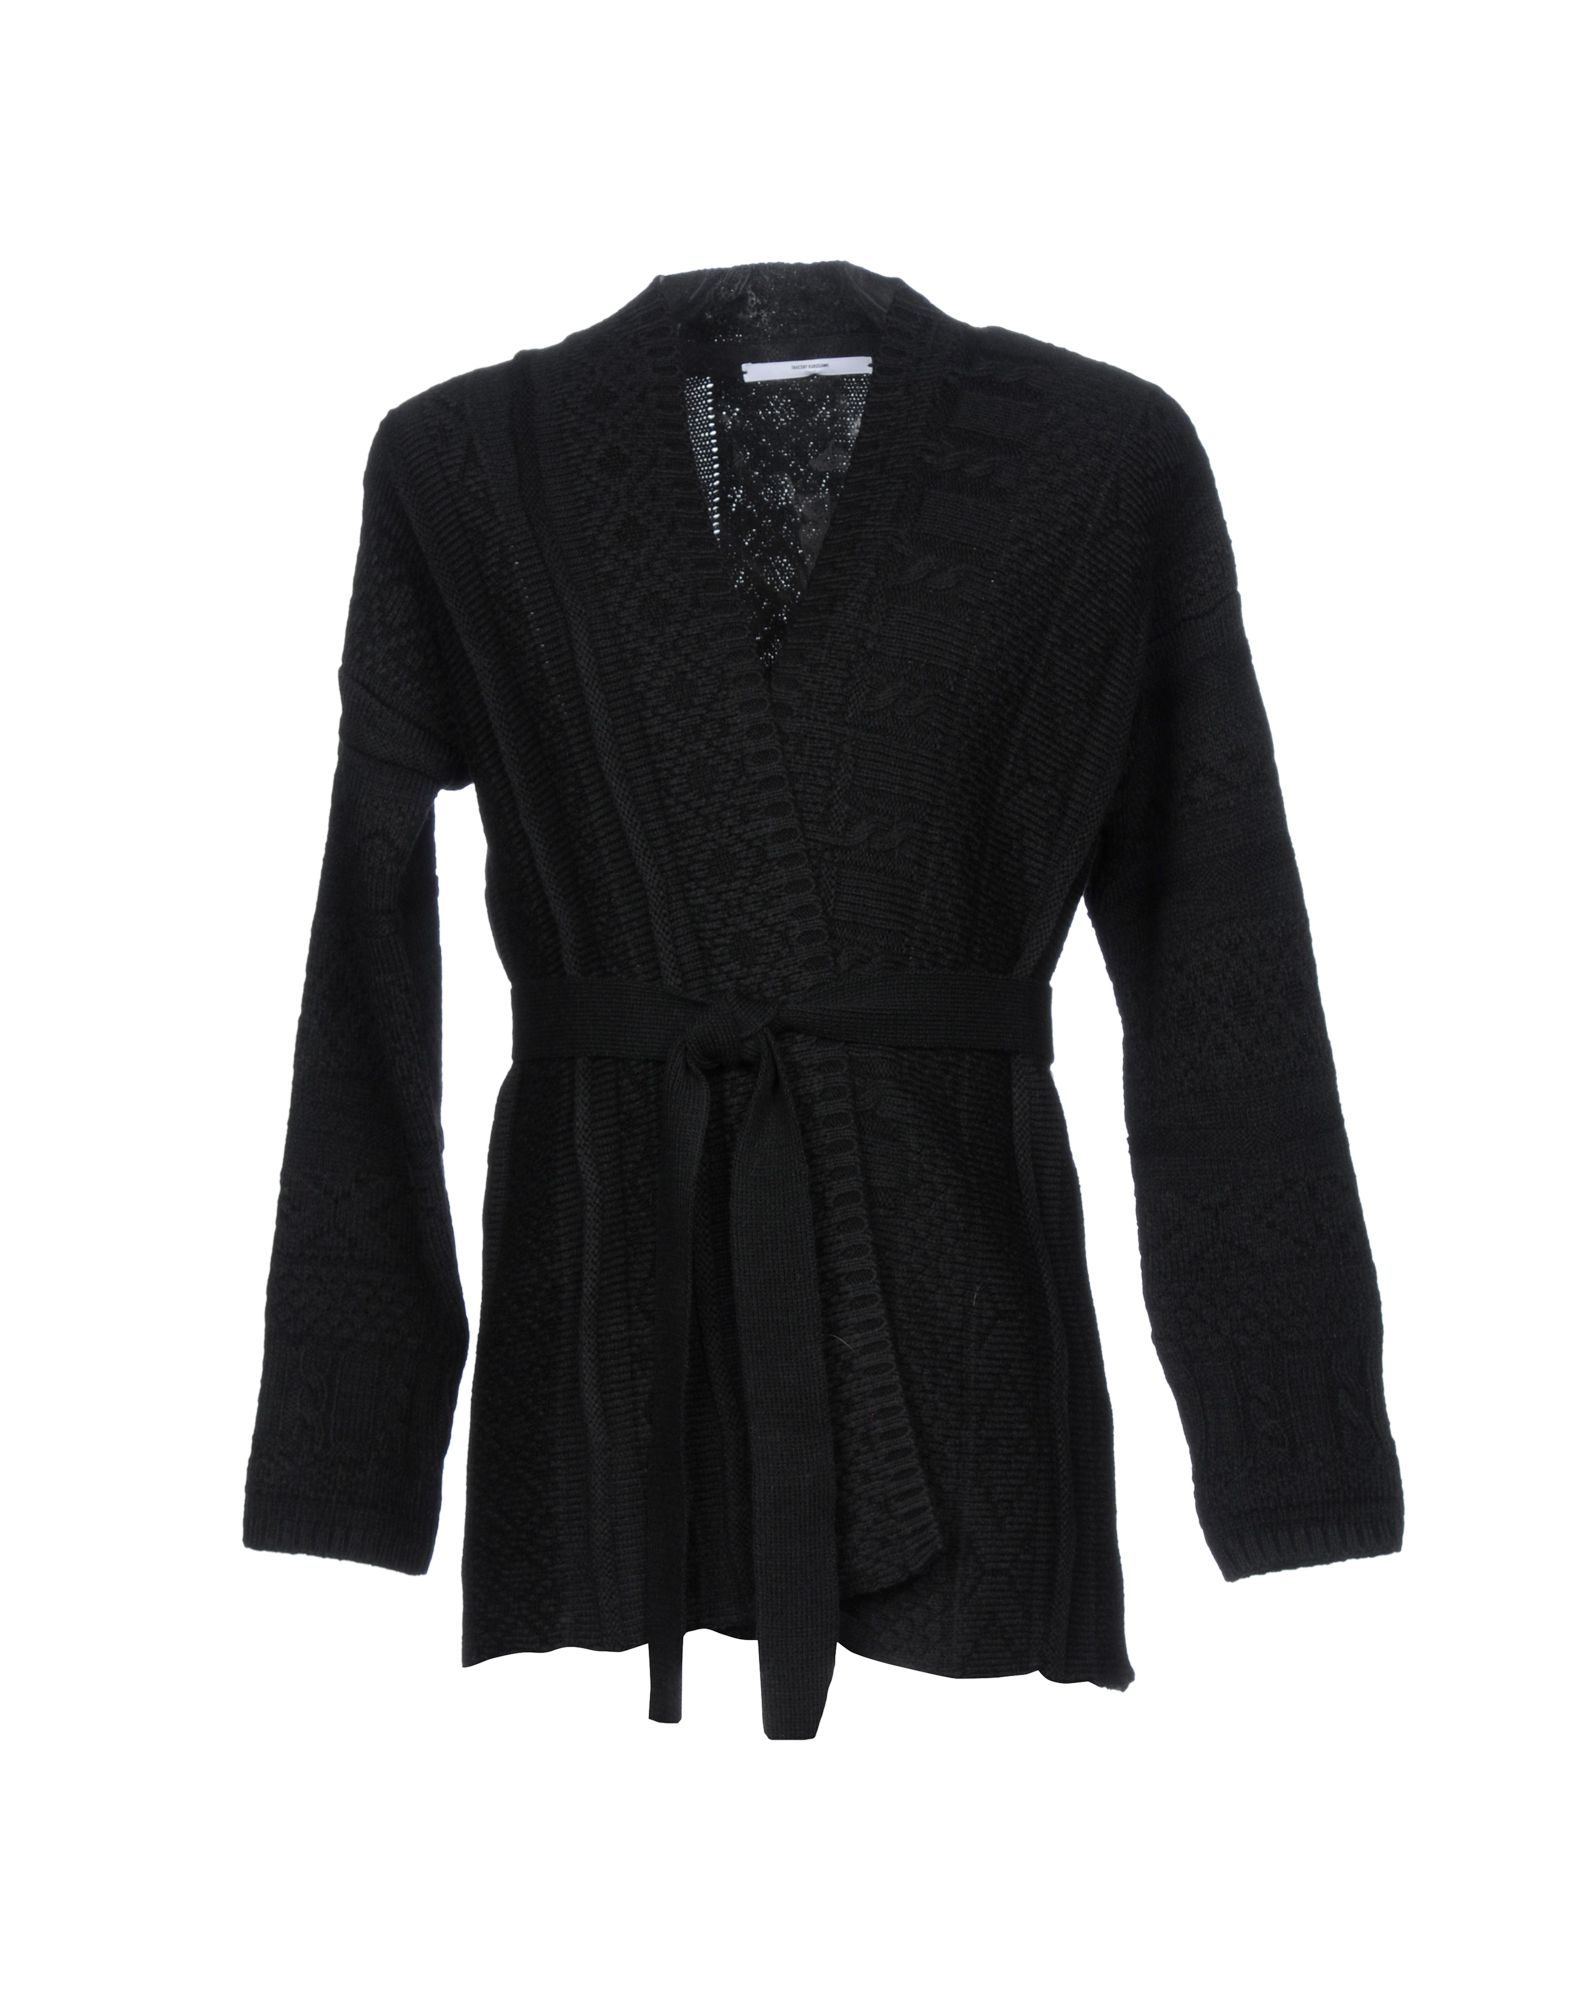 Cardigan Takeshy Kurosawa Donna - Acquista online su